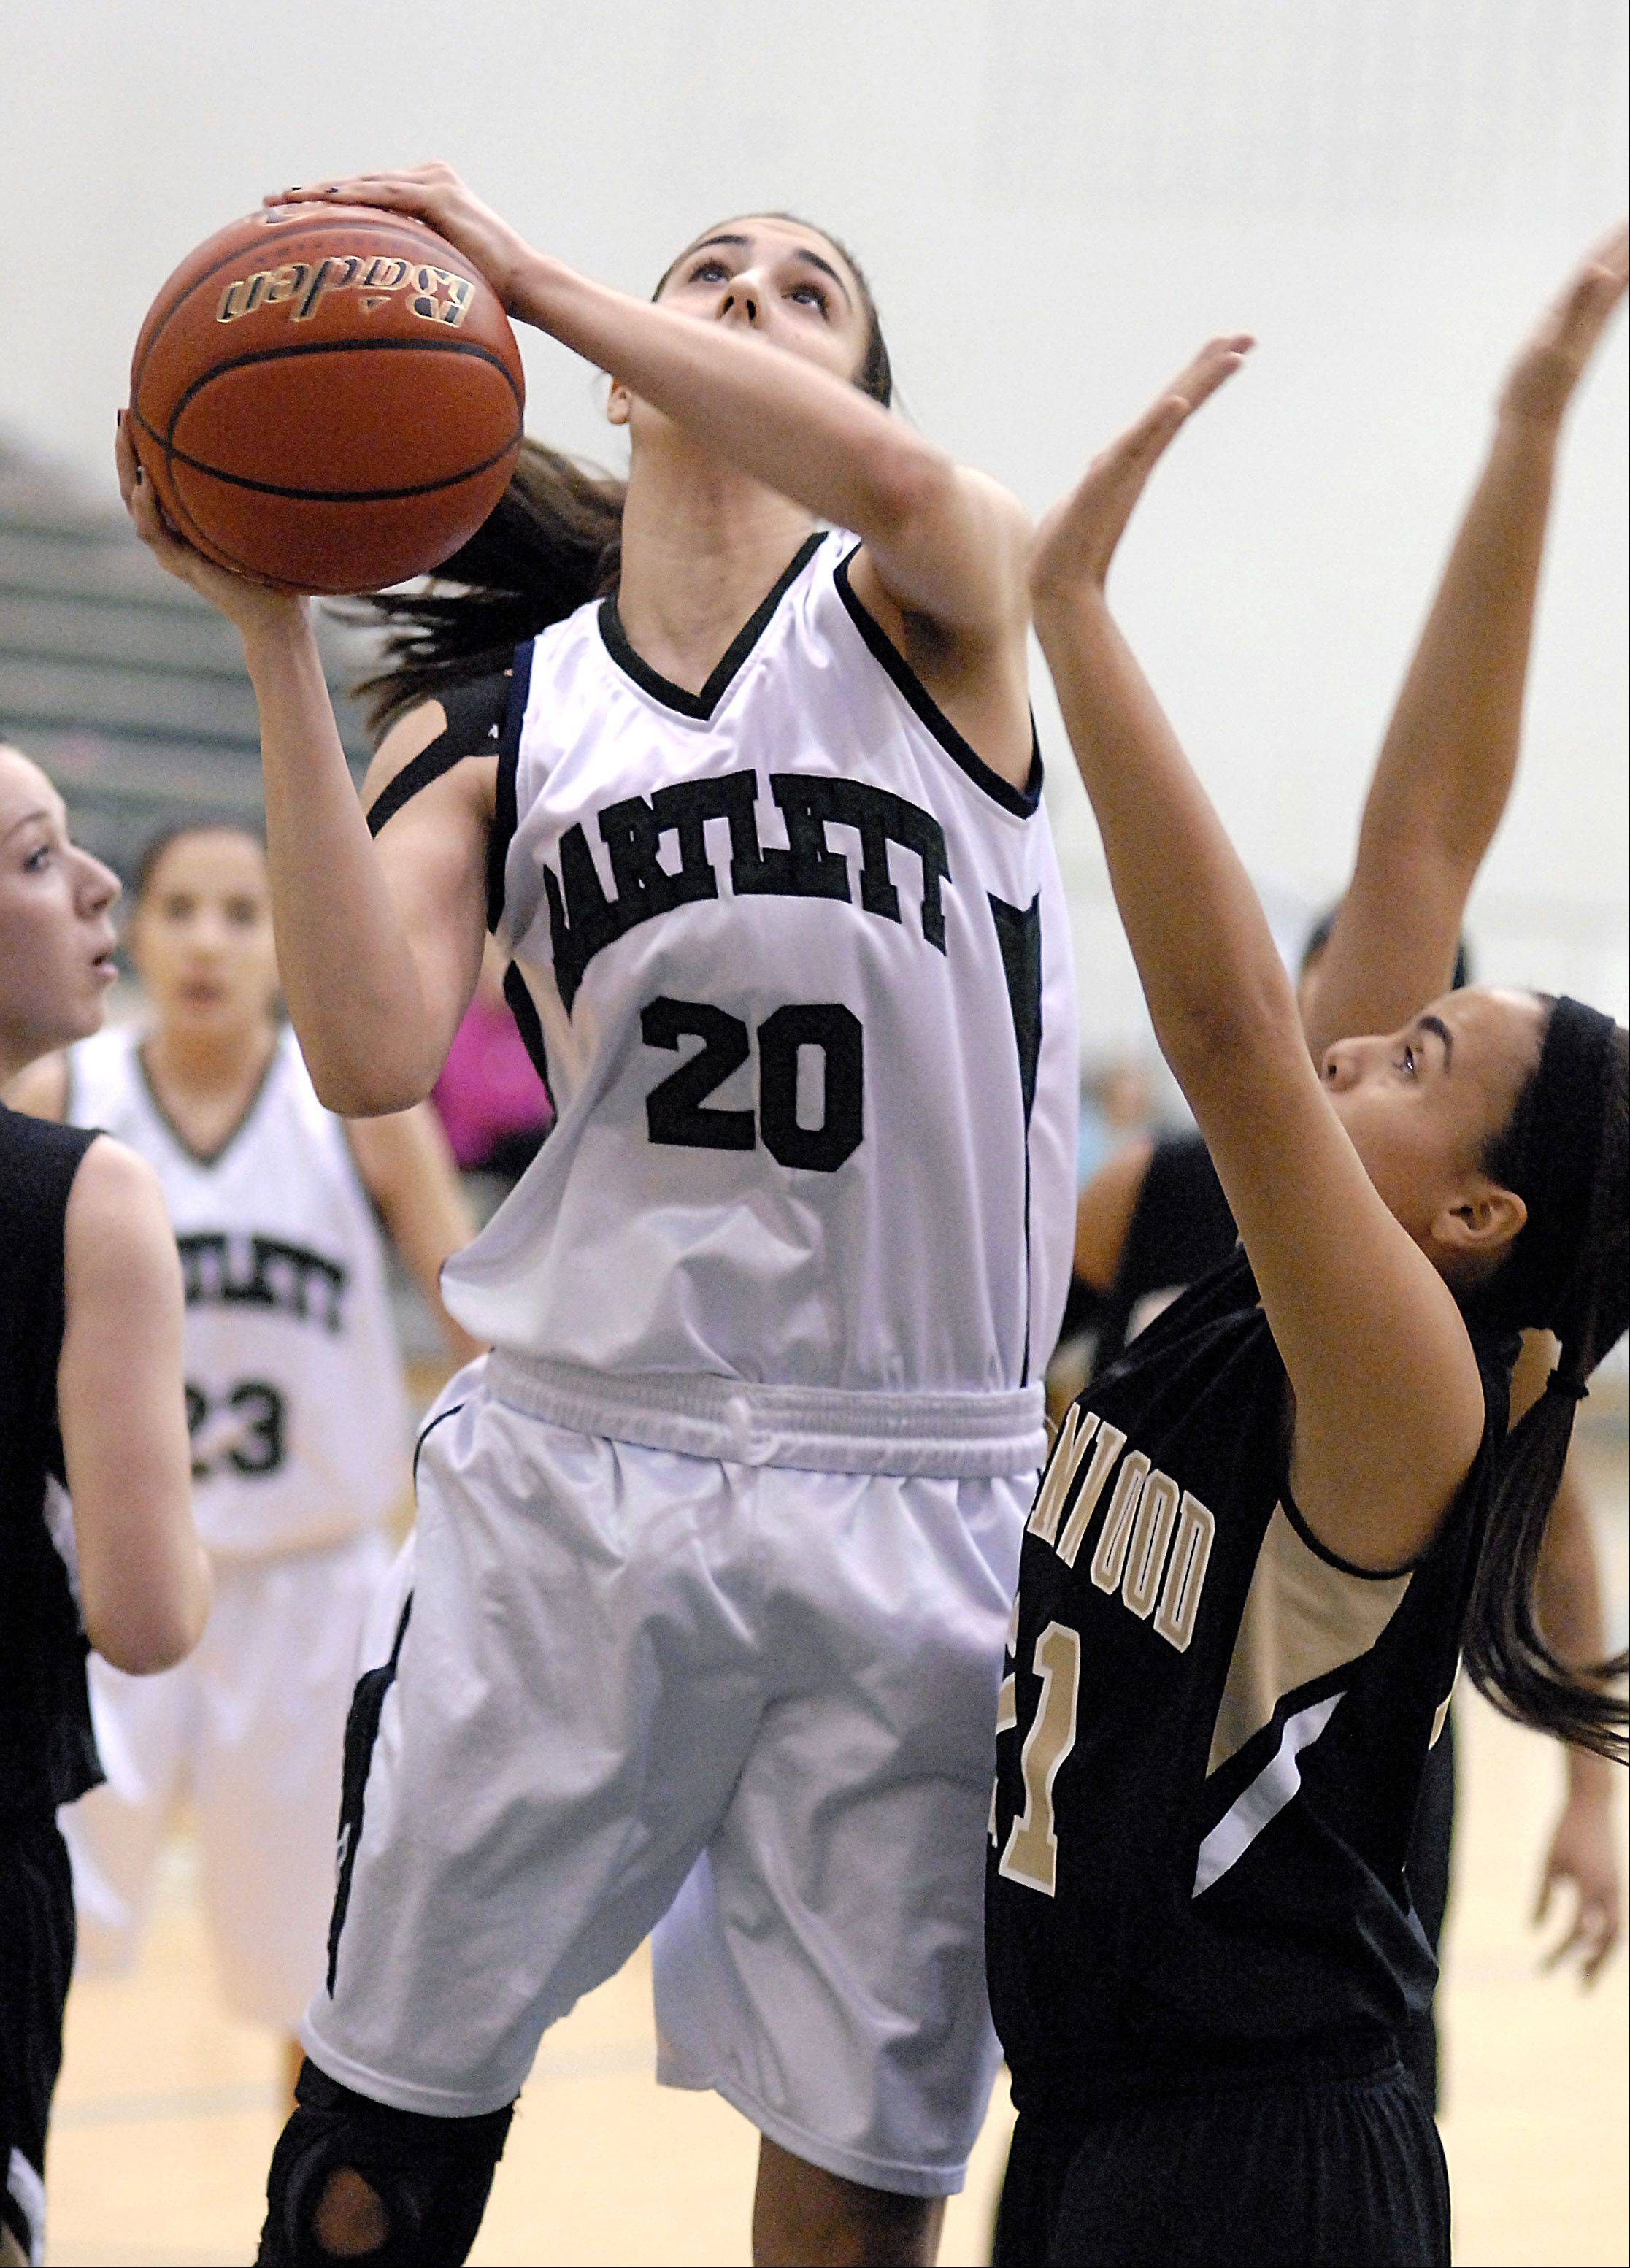 Streamwood's Brittany Delao attempts to block a shot by Bartlett's Elizabeth Arco in the first quarter on Wednesday at Bartlett.